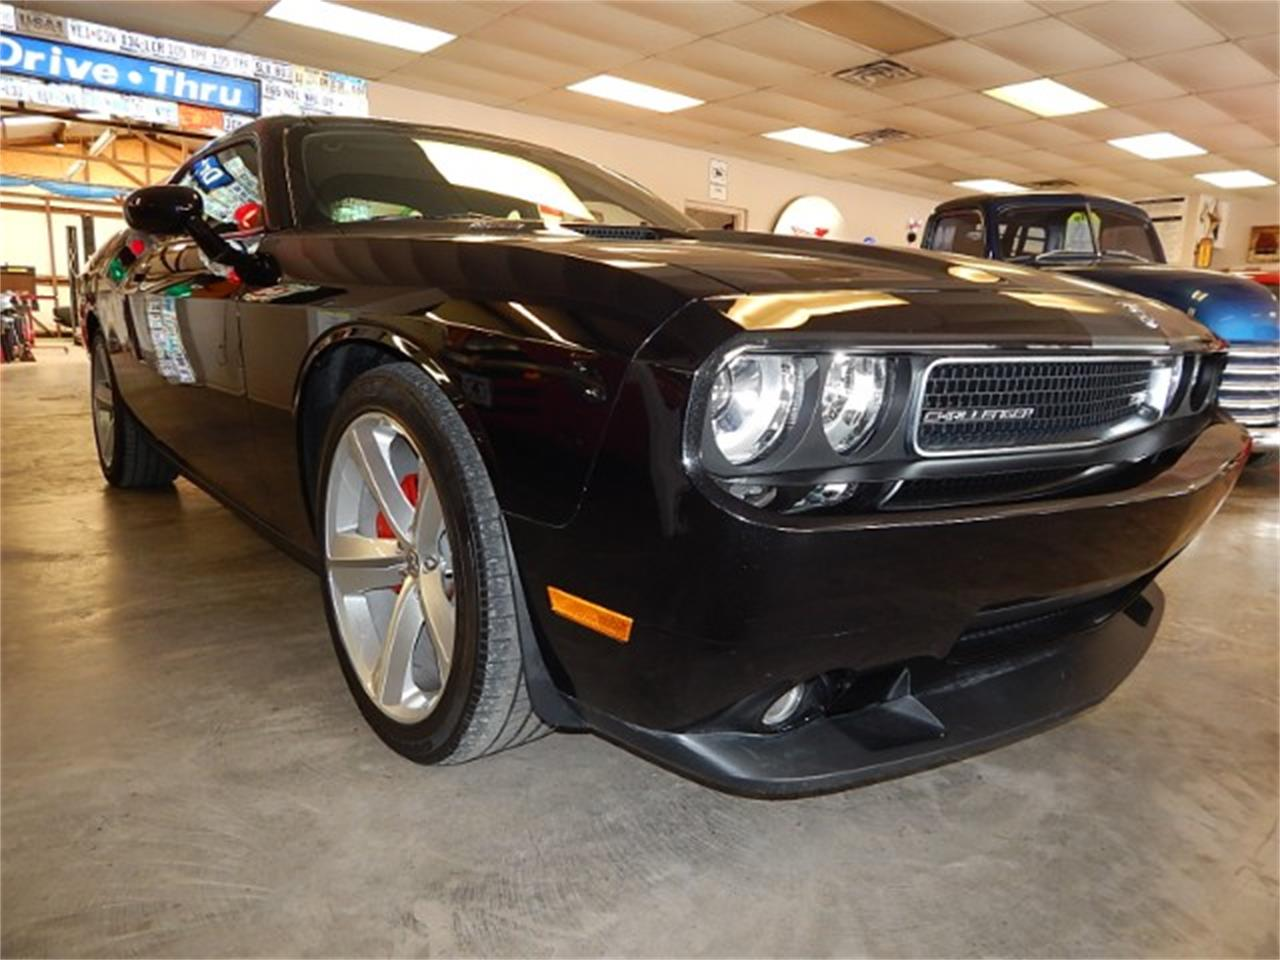 2008 Dodge Challenger for sale in Wichita Falls, TX – photo 4